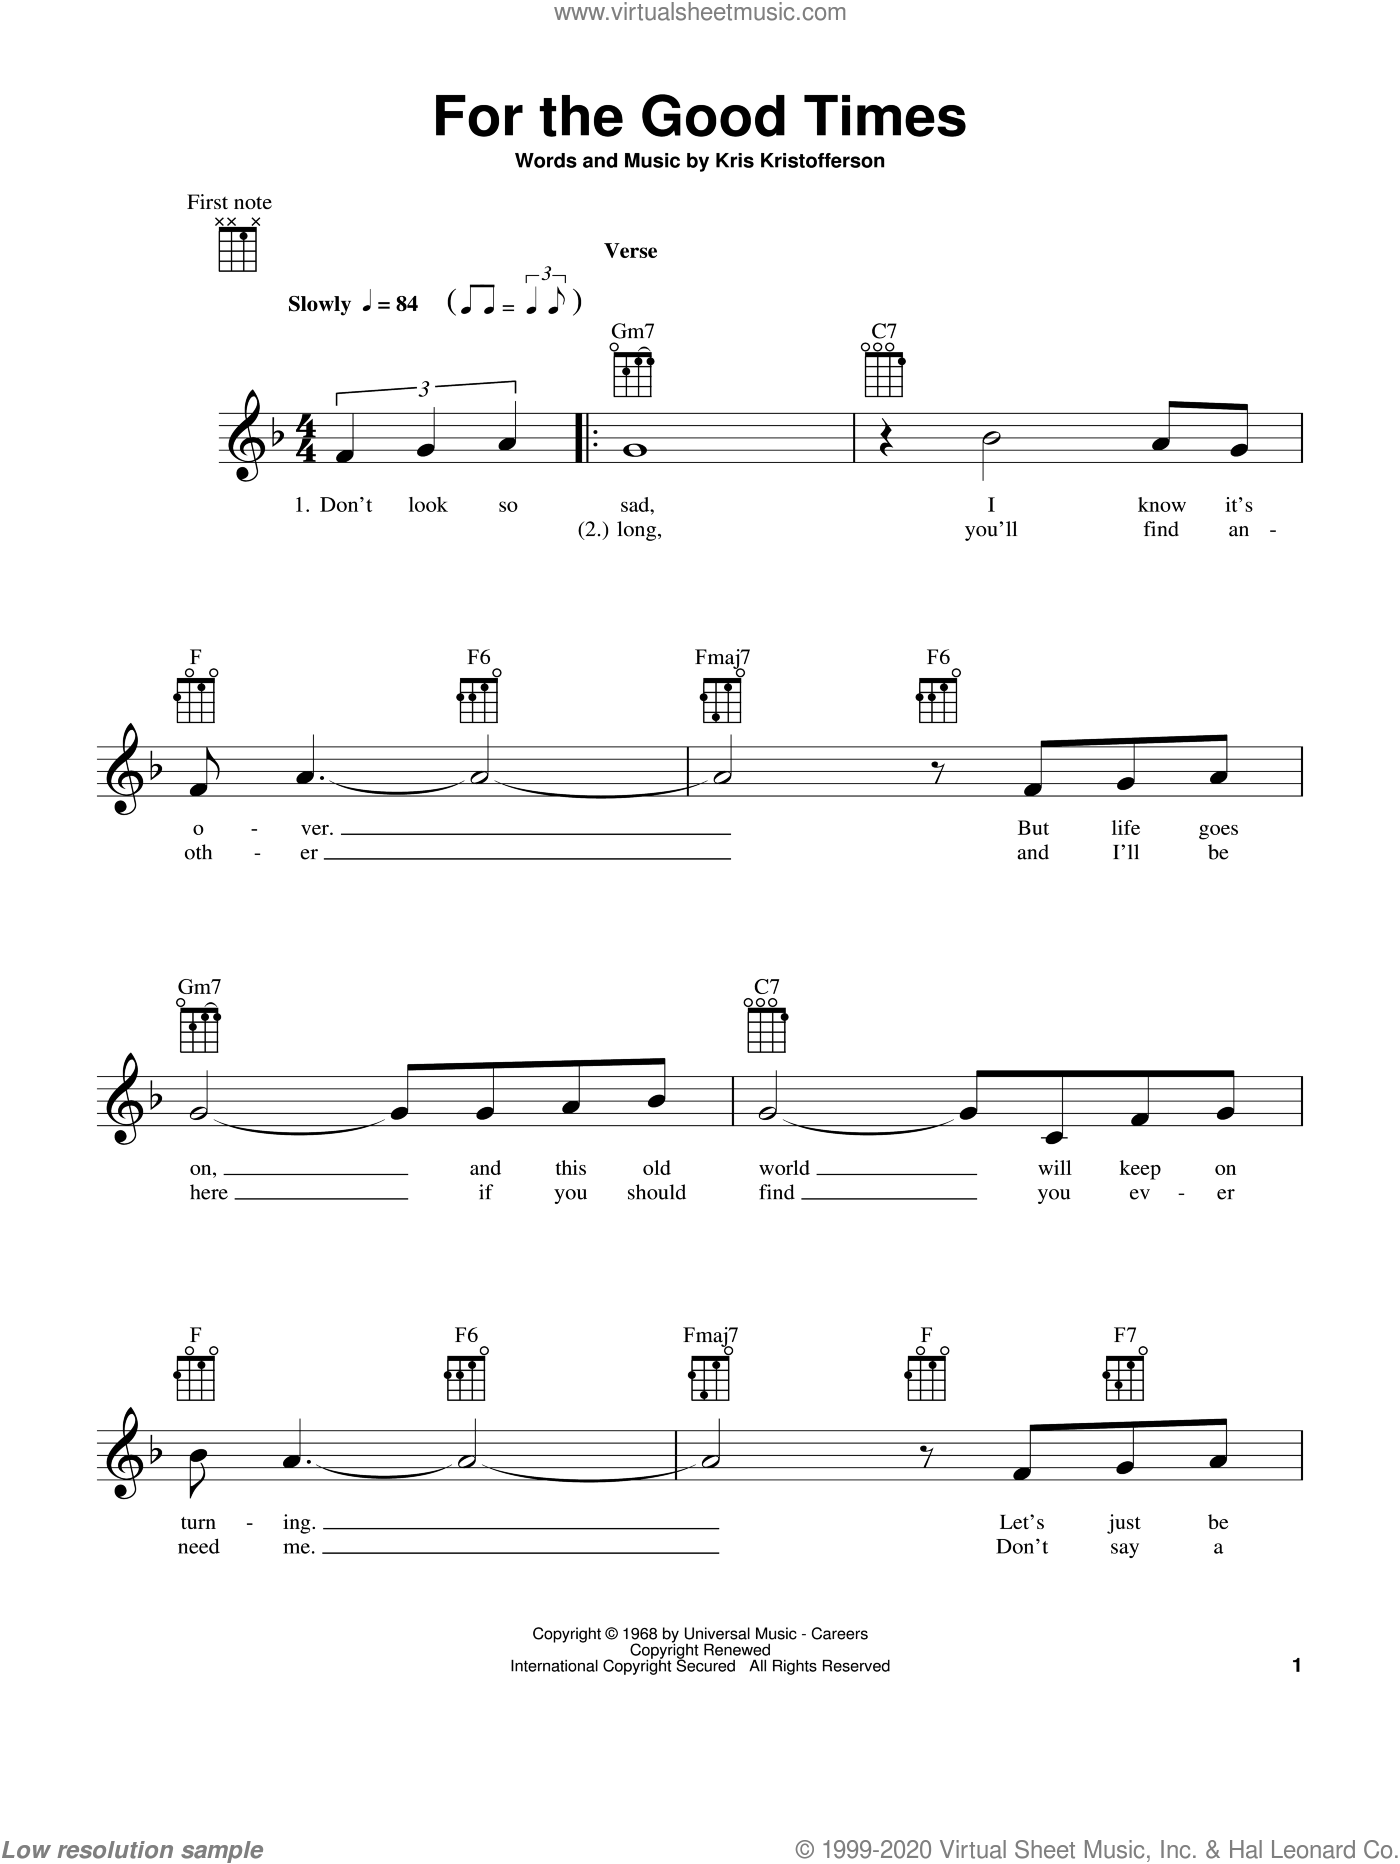 For The Good Times sheet music for ukulele by Elvis Presley and Kris Kristofferson, intermediate skill level